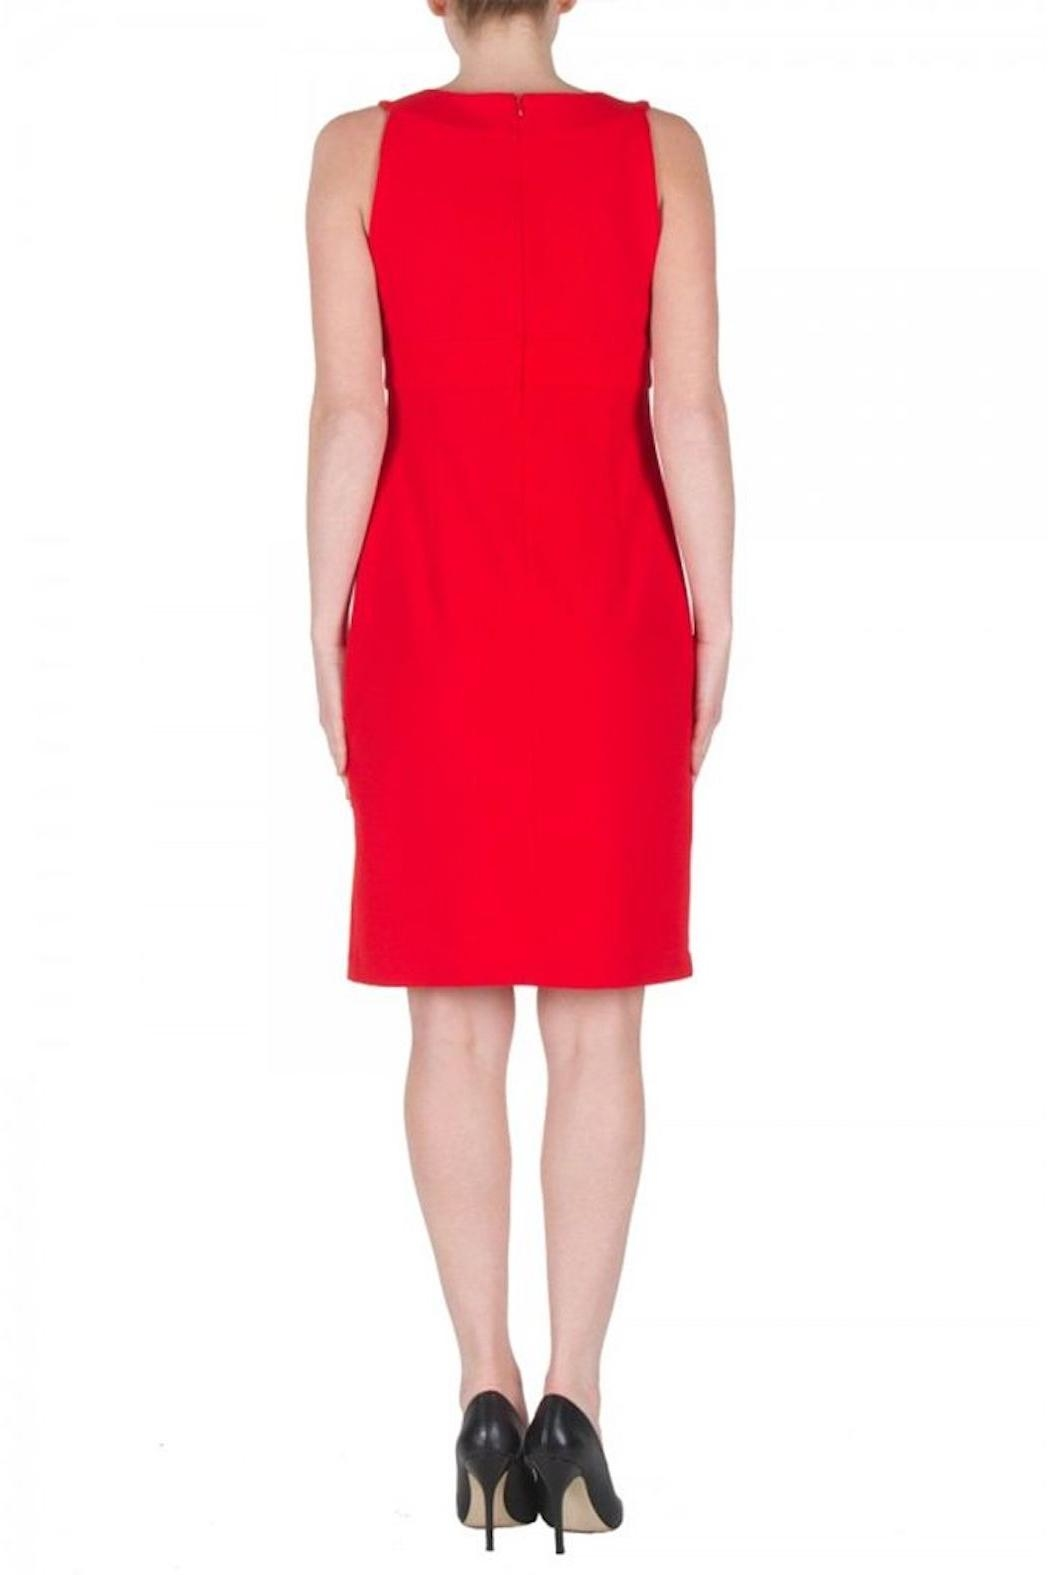 Joseph Ribkoff Red Cocktail Dress - Side Cropped Image